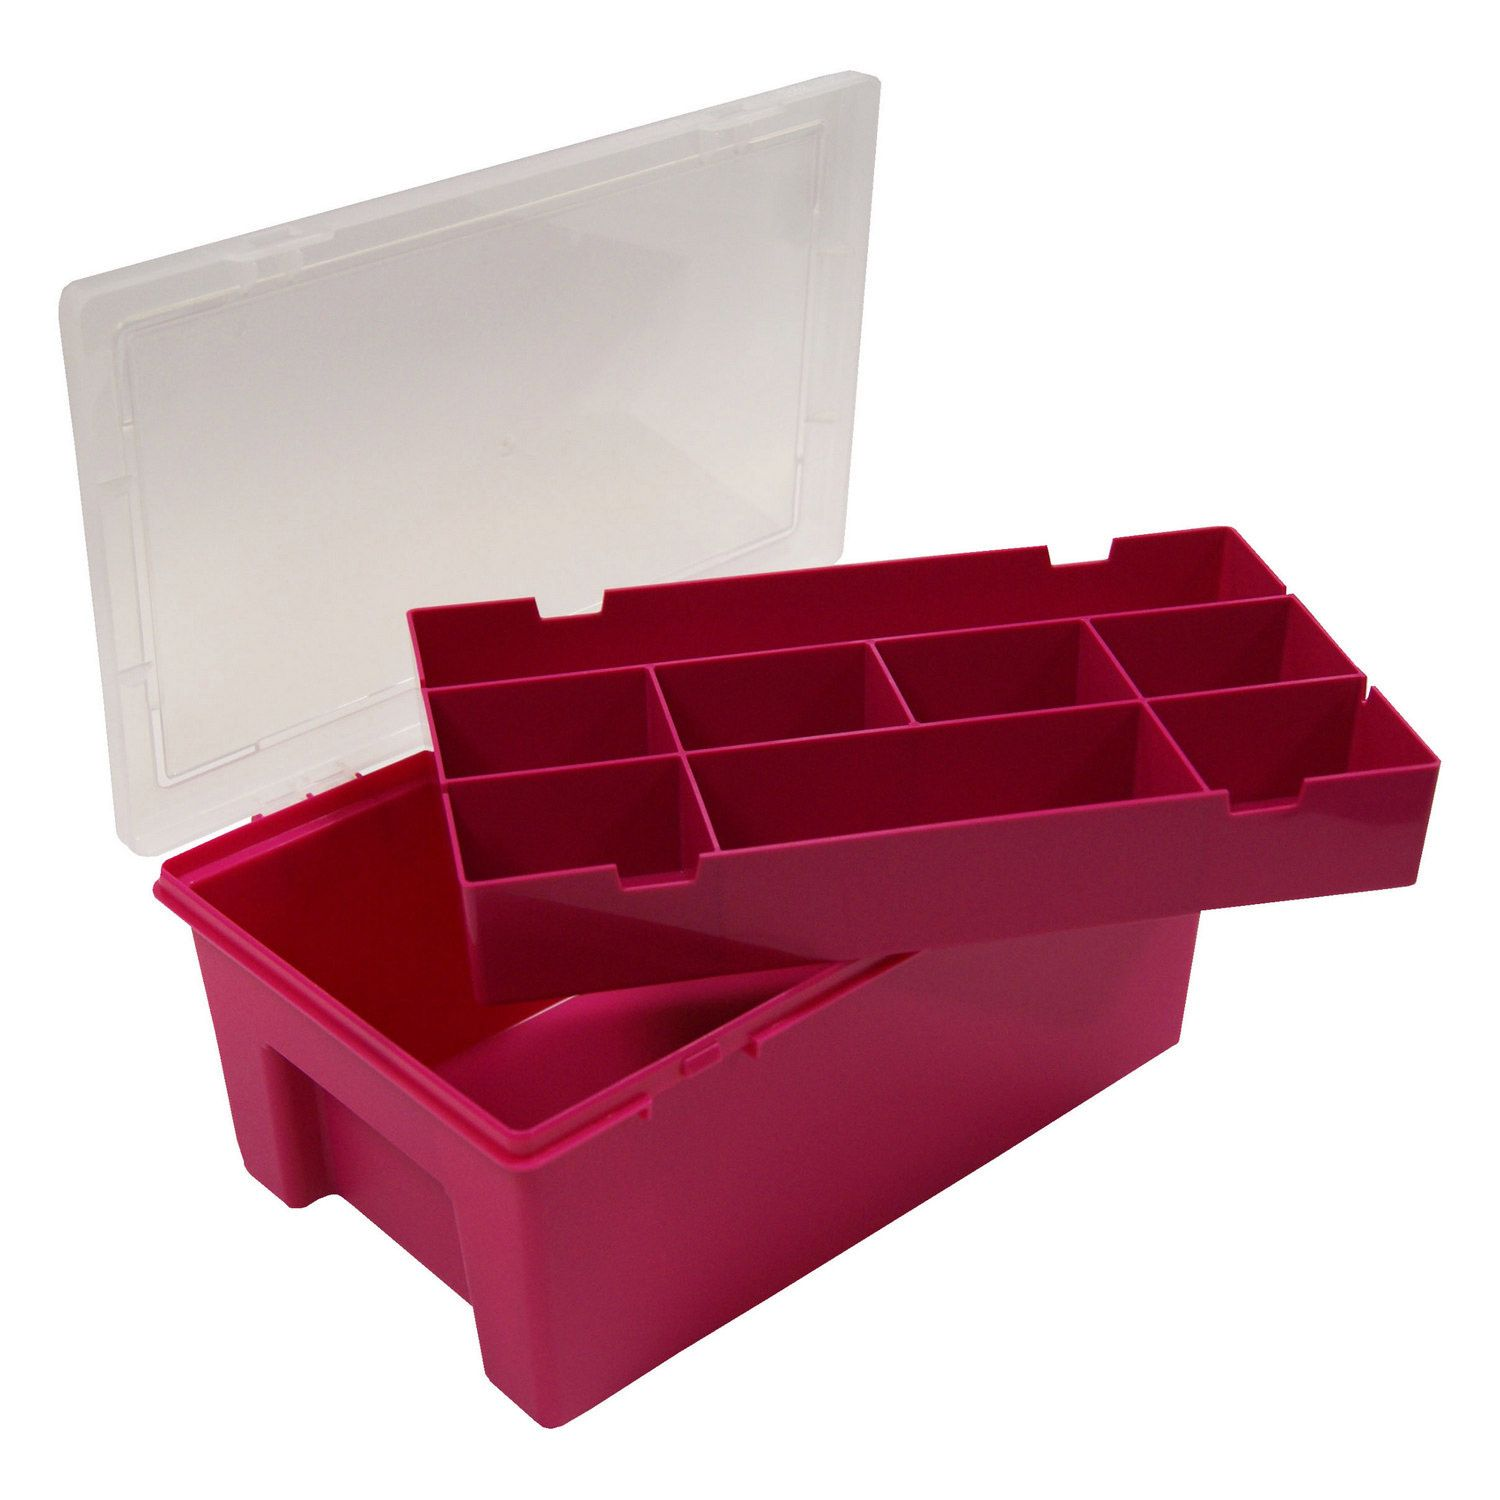 Wham 29cm Pink Storage Box with 8 Divisions and Tray | Craft | Craft Storage, Loom Band Storage at The Range